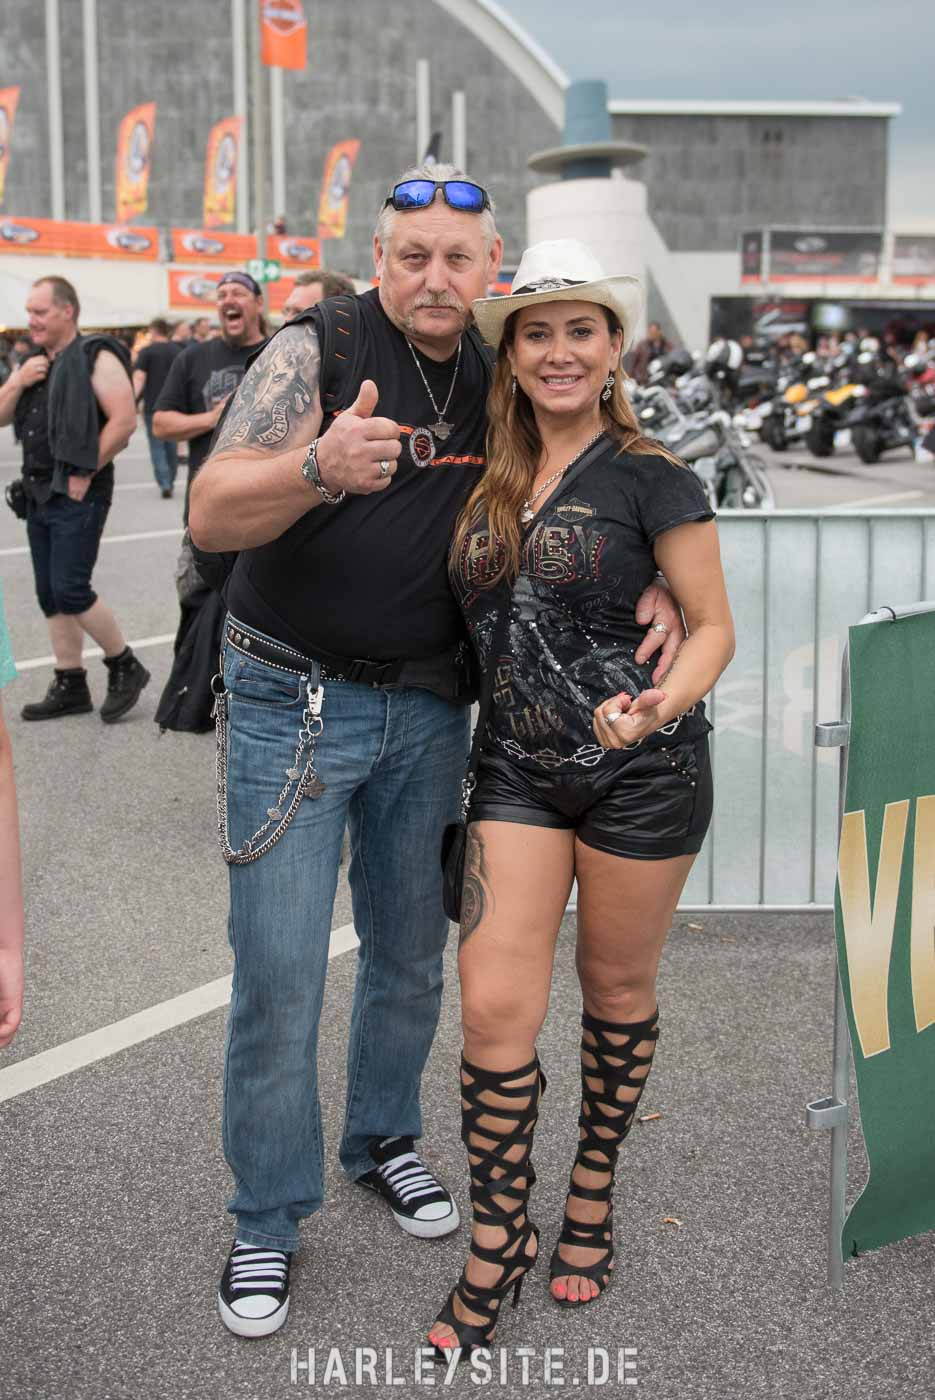 Hamburg Harley Days 3750